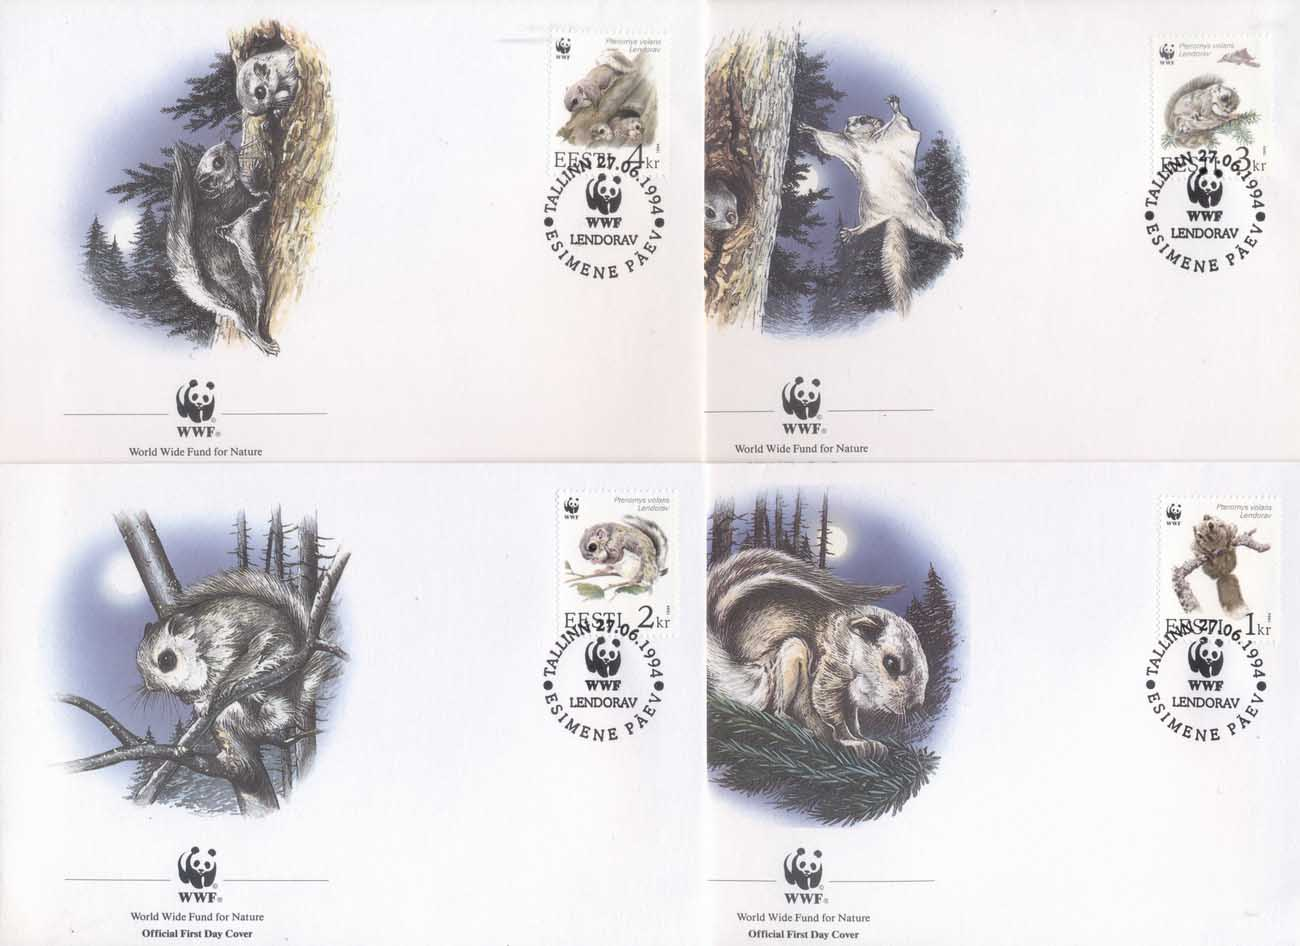 Estonia 1994 WWF European Flying Squirrel FDC